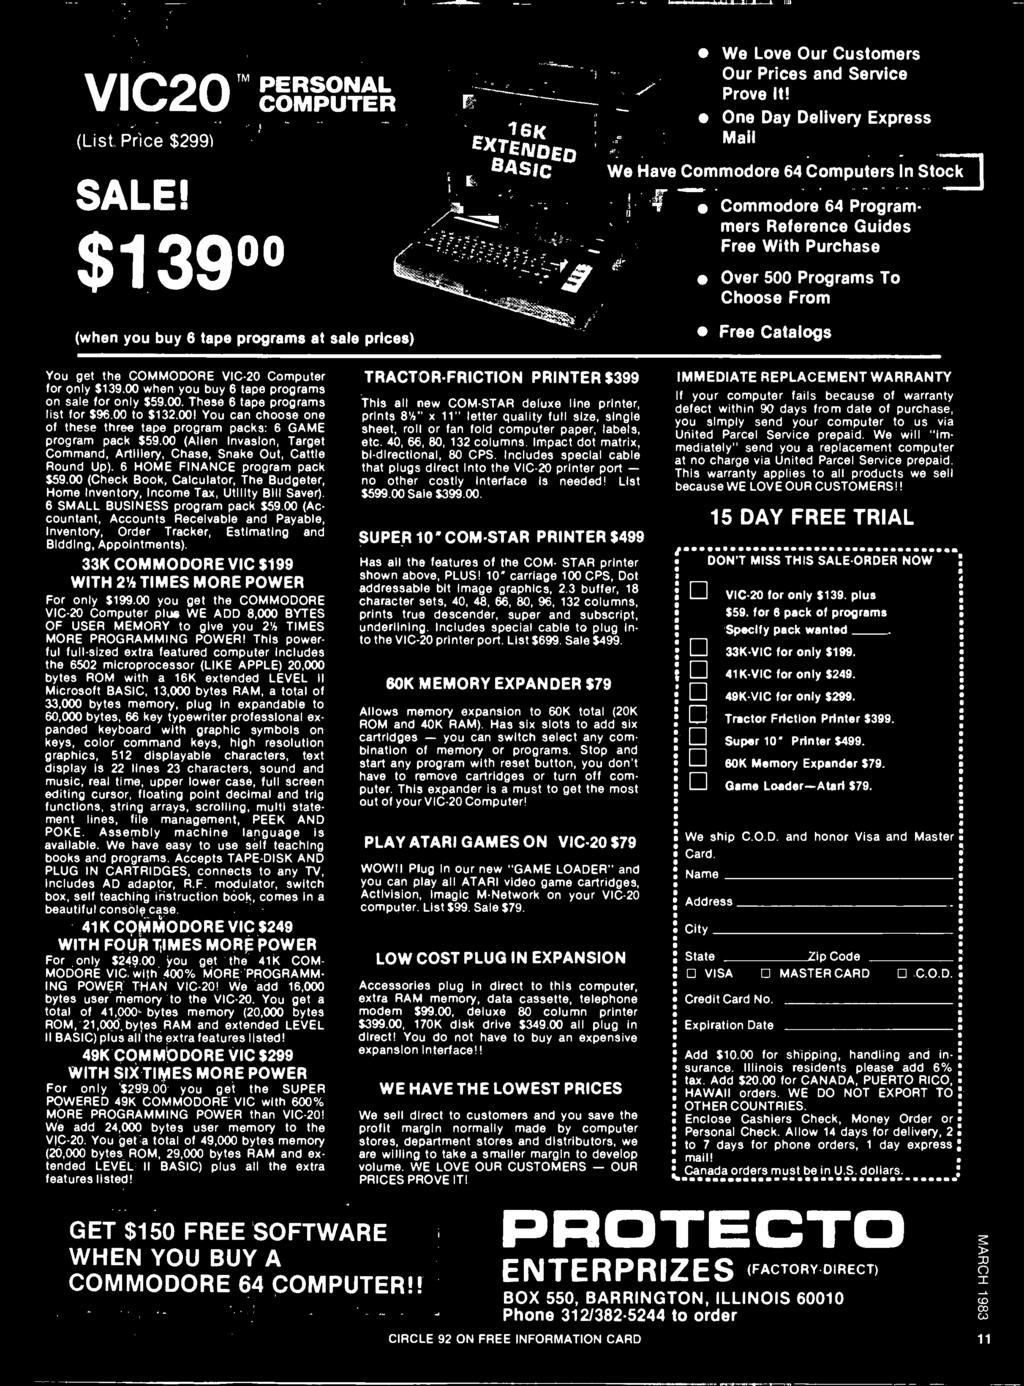 Rad Computer Corner Drawing Board State Of Solid 7505 Guitar Preamp Output Jack Wiring Commodore Vic 20 For Only 13900 When You Buy 6 Tape Programs On Sale